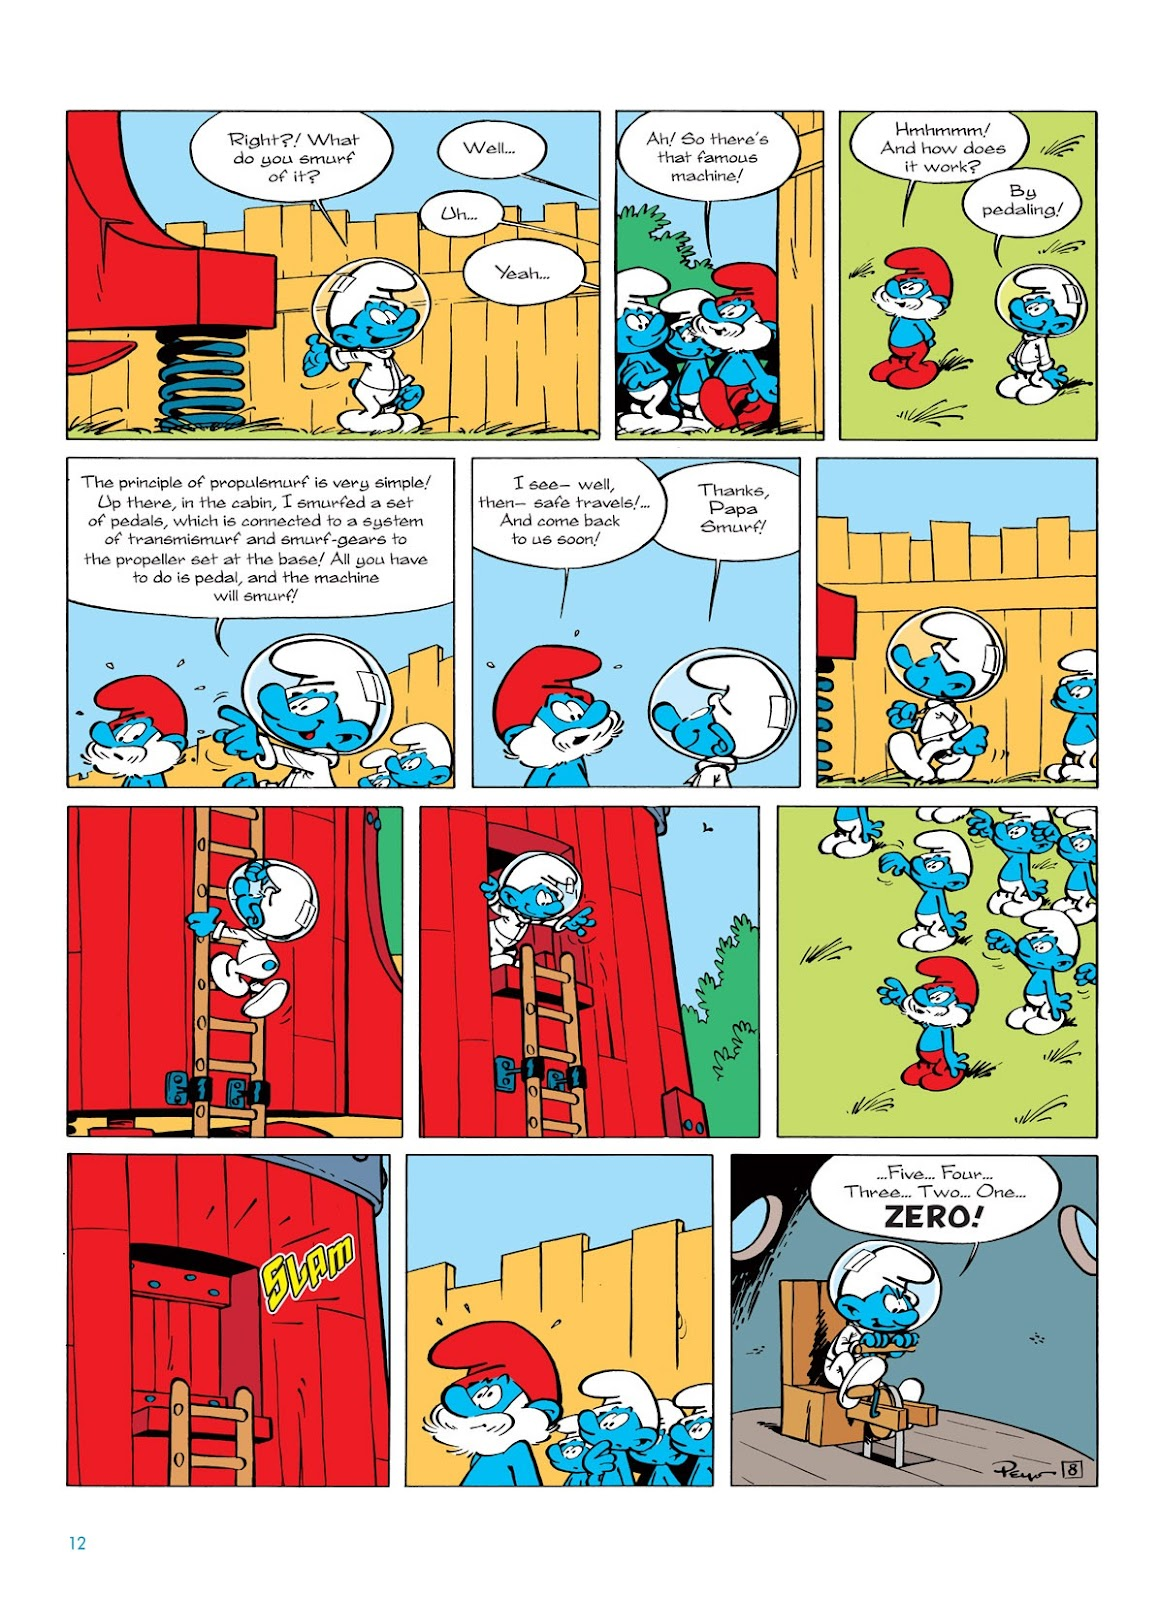 Read online The Smurfs comic -  Issue #7 - 12